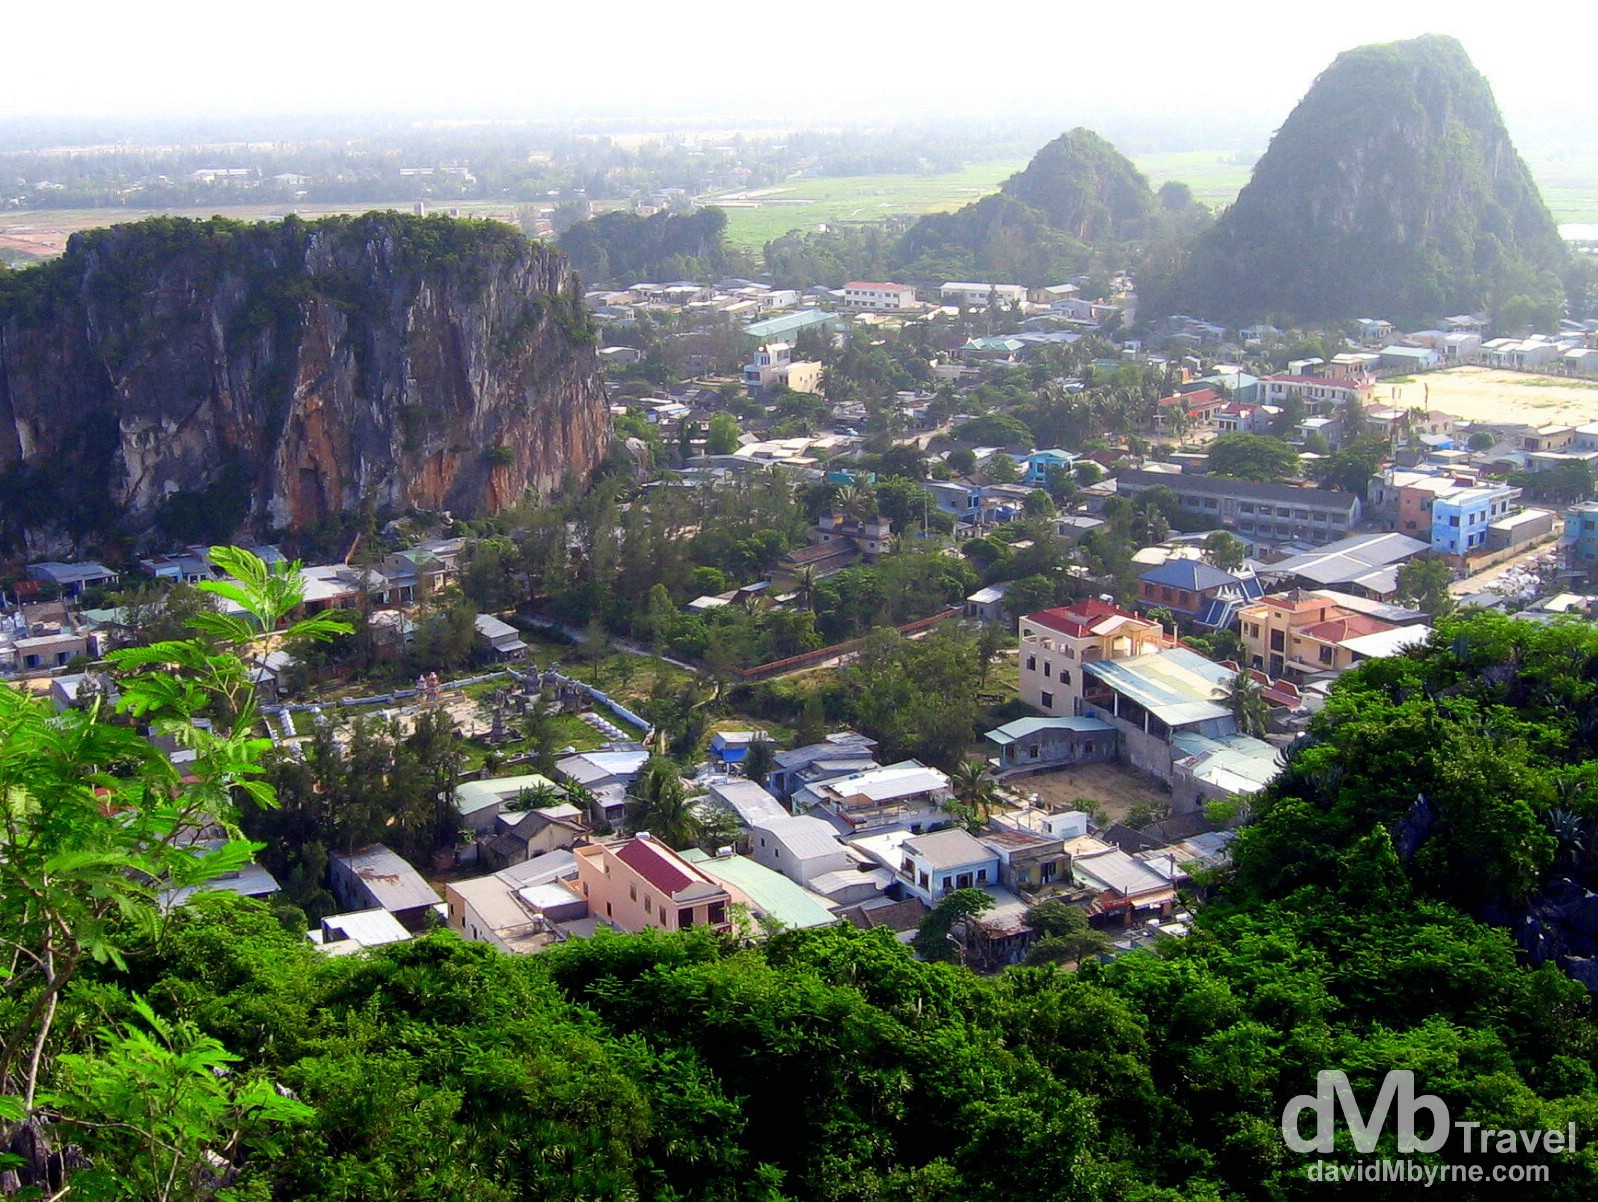 A section of the Marble Mountains outside Danang, Central Vietnam. September 10th 2005.